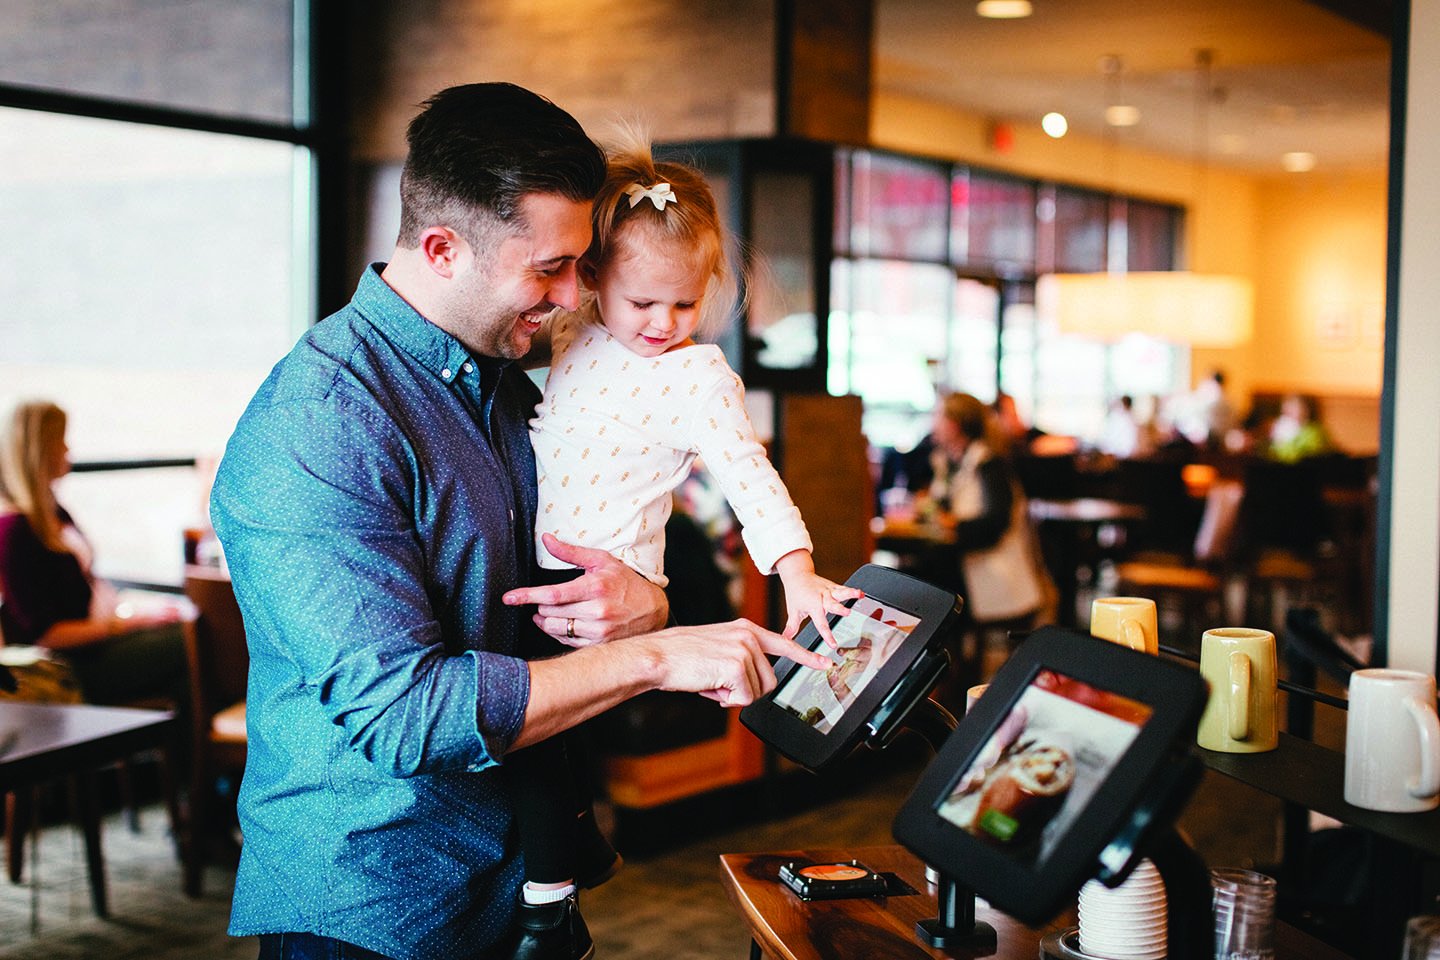 Panera Bread says digital sales have surpassed $1 billion on an annualized basis and could double in 2019.